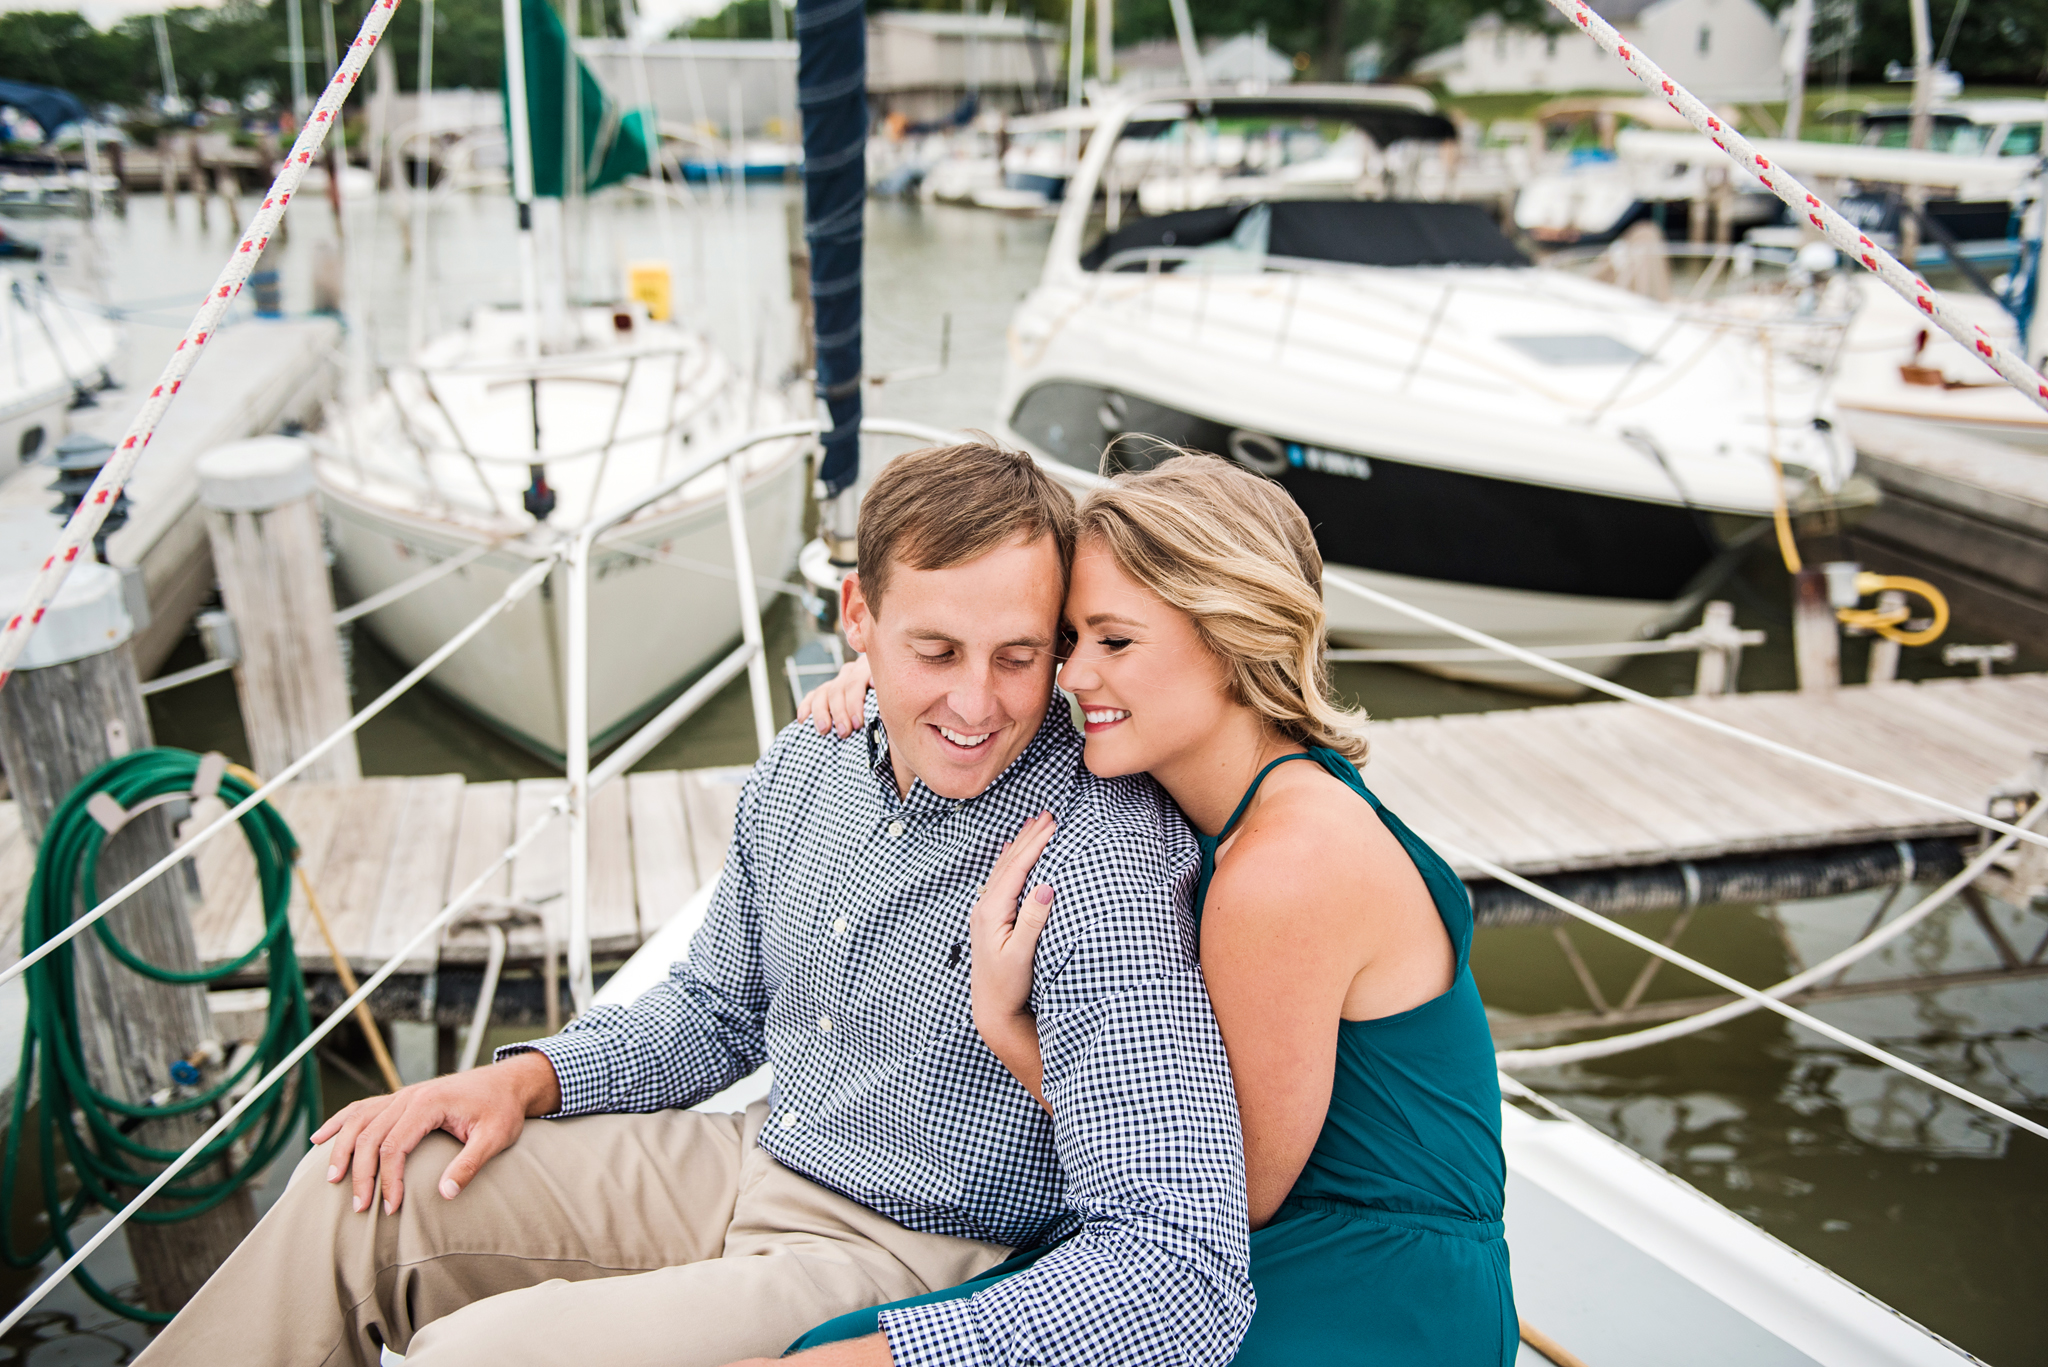 George_Eastman_House_Rochester_Yacht_Club_Rochester_Engagement_Session_JILL_STUDIO_Rochester_NY_Photographer_DSC_8187.jpg